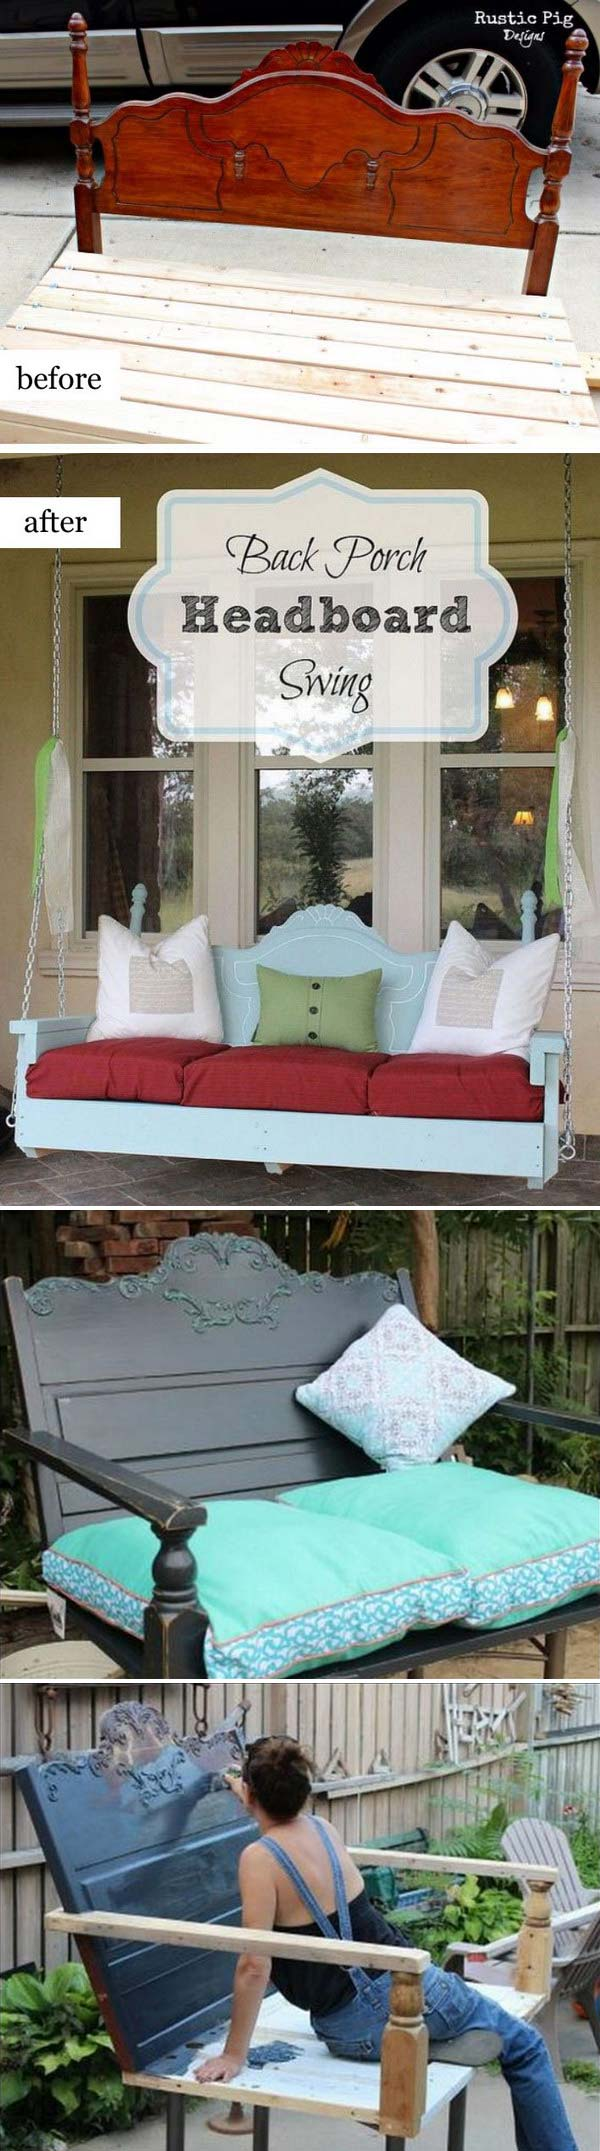 Back Porch Headboard Swing